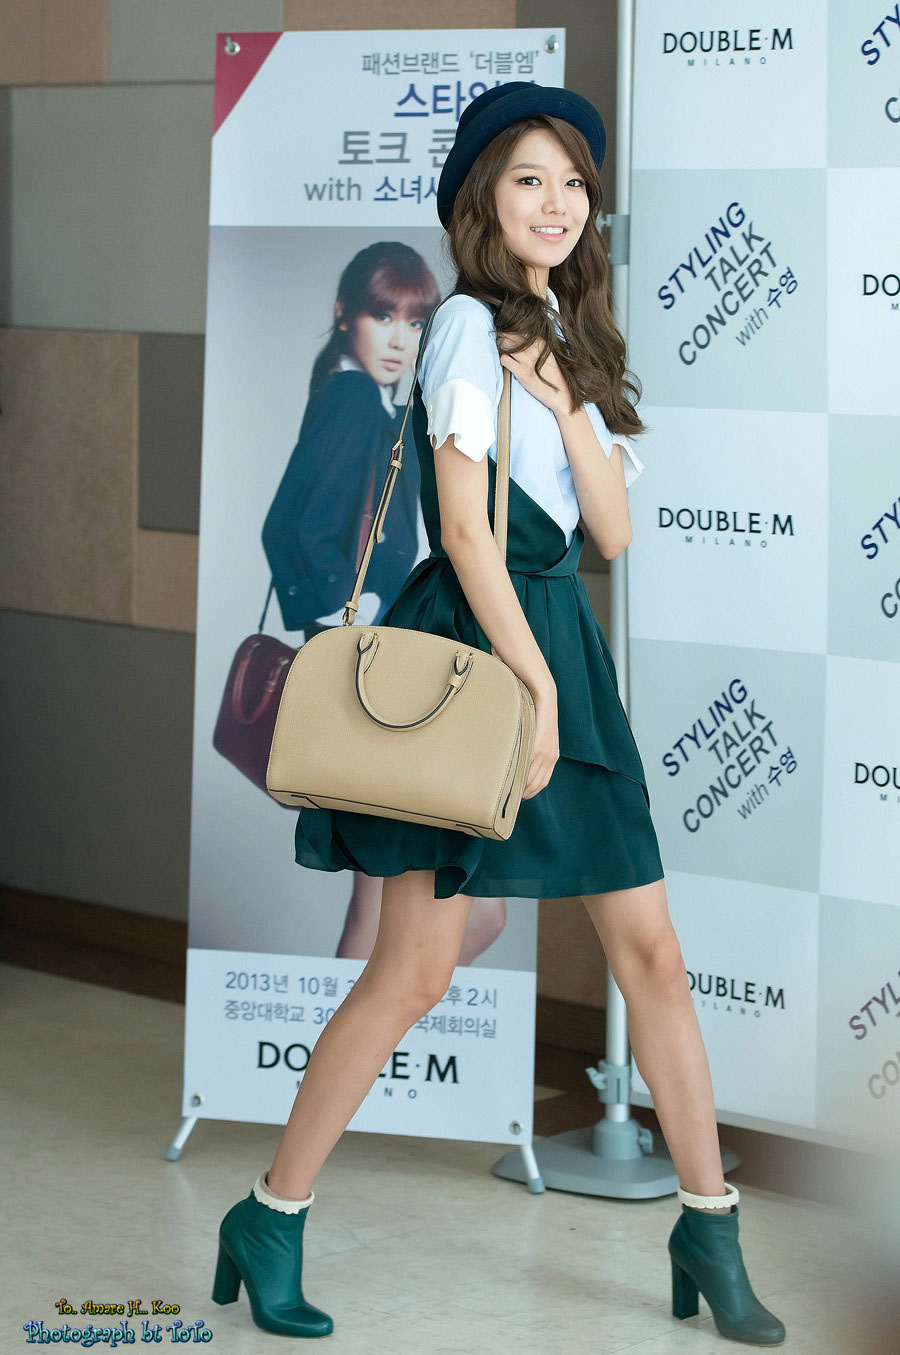 Double-M Styling Talk Concert with Sooyoung